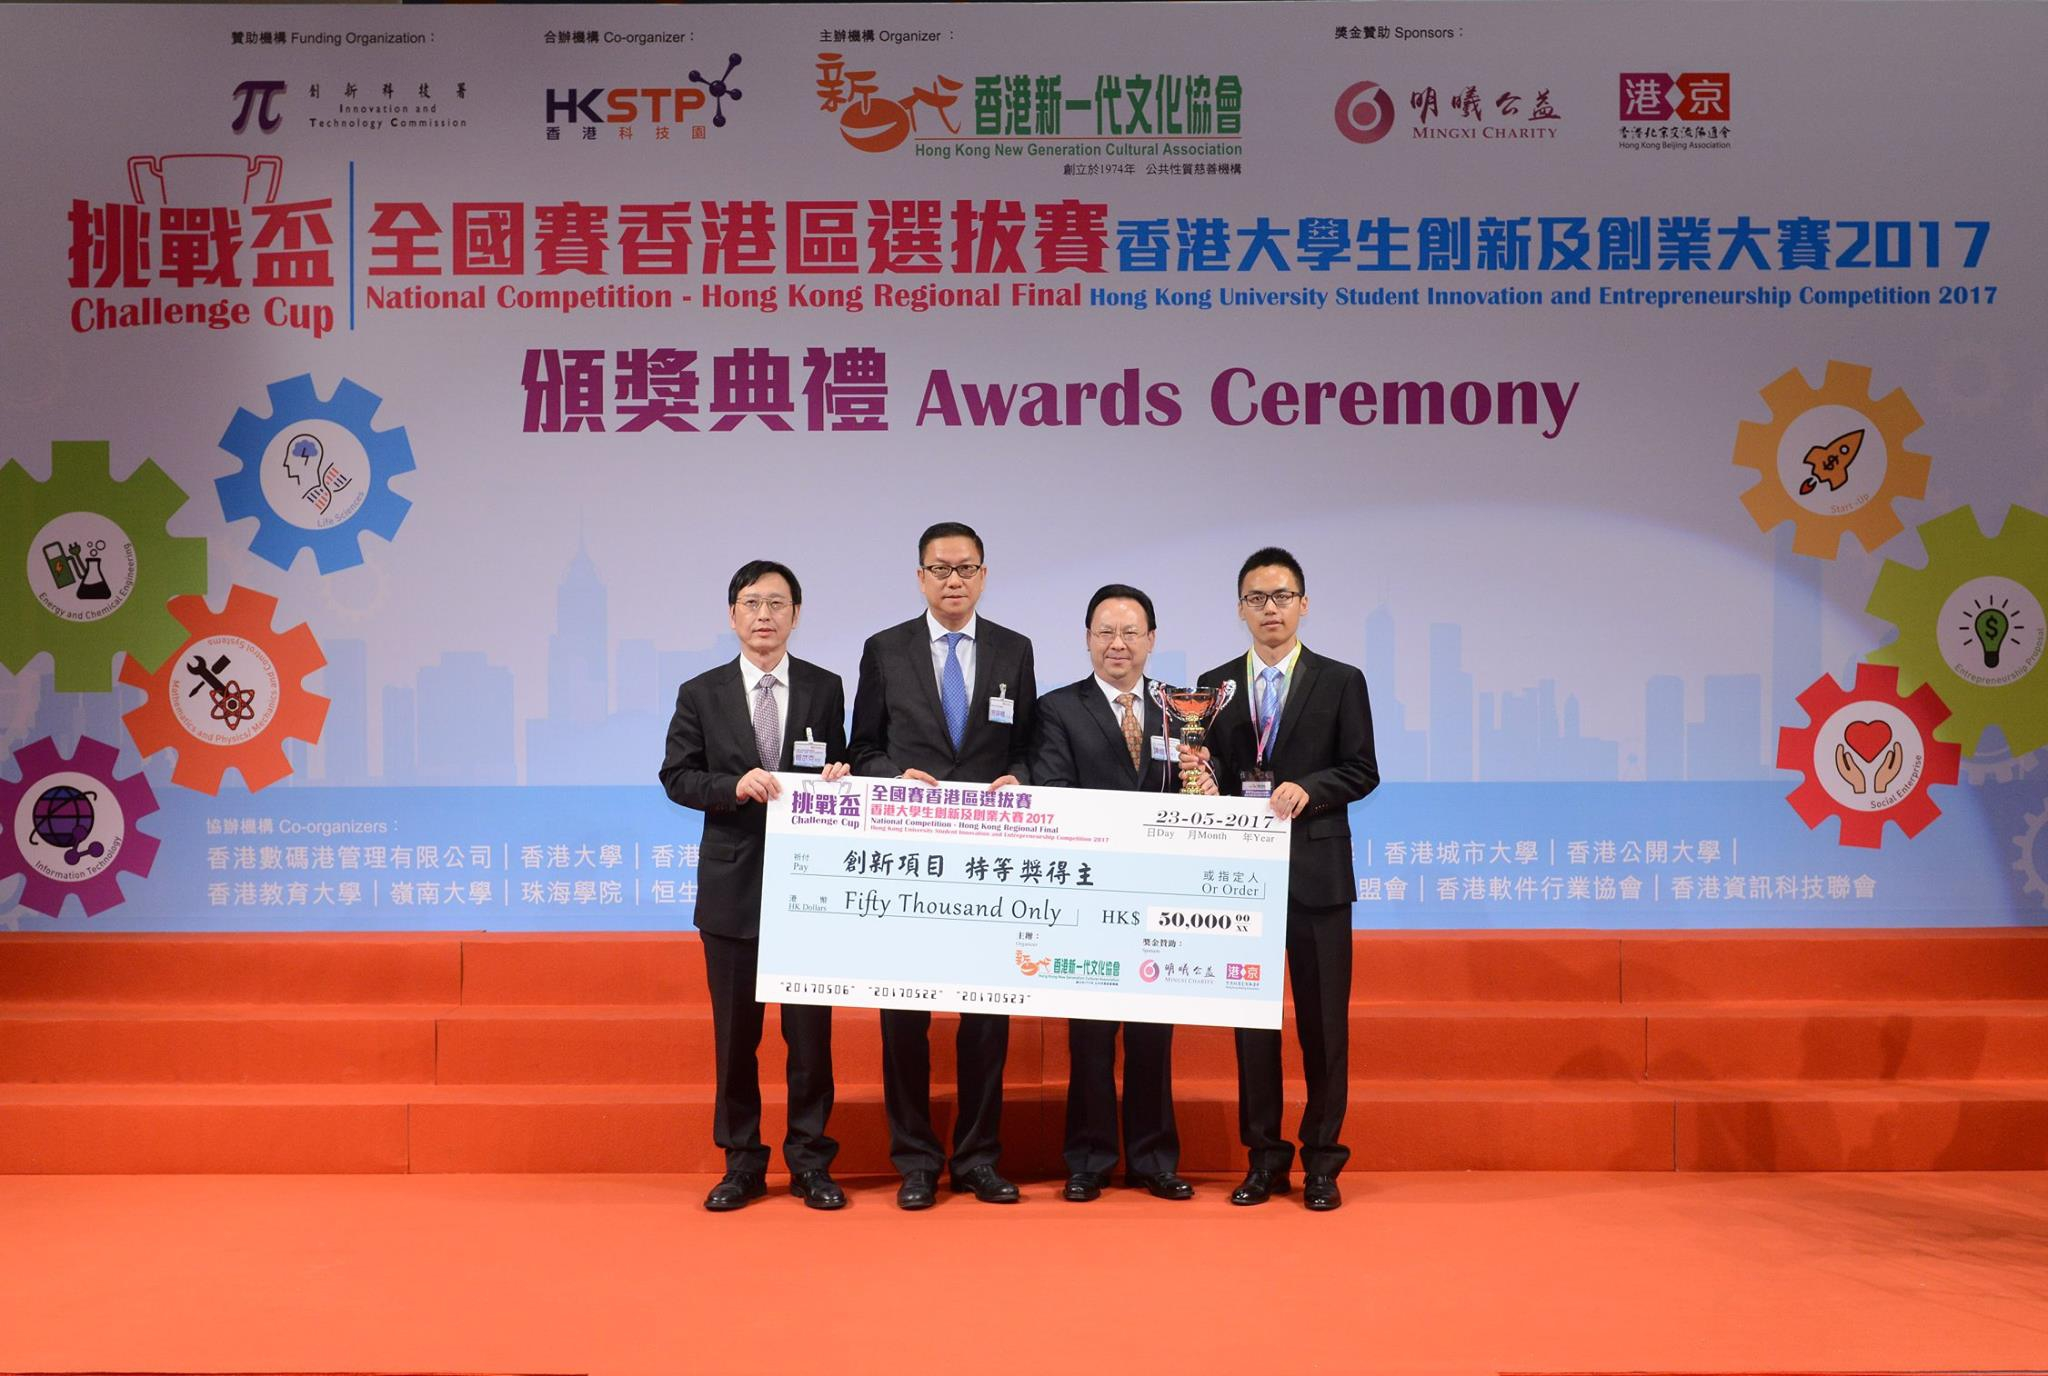 Mr. Dang Xiaobing (right) from the Department of Mechanical and Automation Engineering receives the Top Prize of Innovation category from Prof. Tan Tieniu (2nd right), Deputy Director of the Liaison Office of the Central People's Government (LOCPG) in the HKSAR